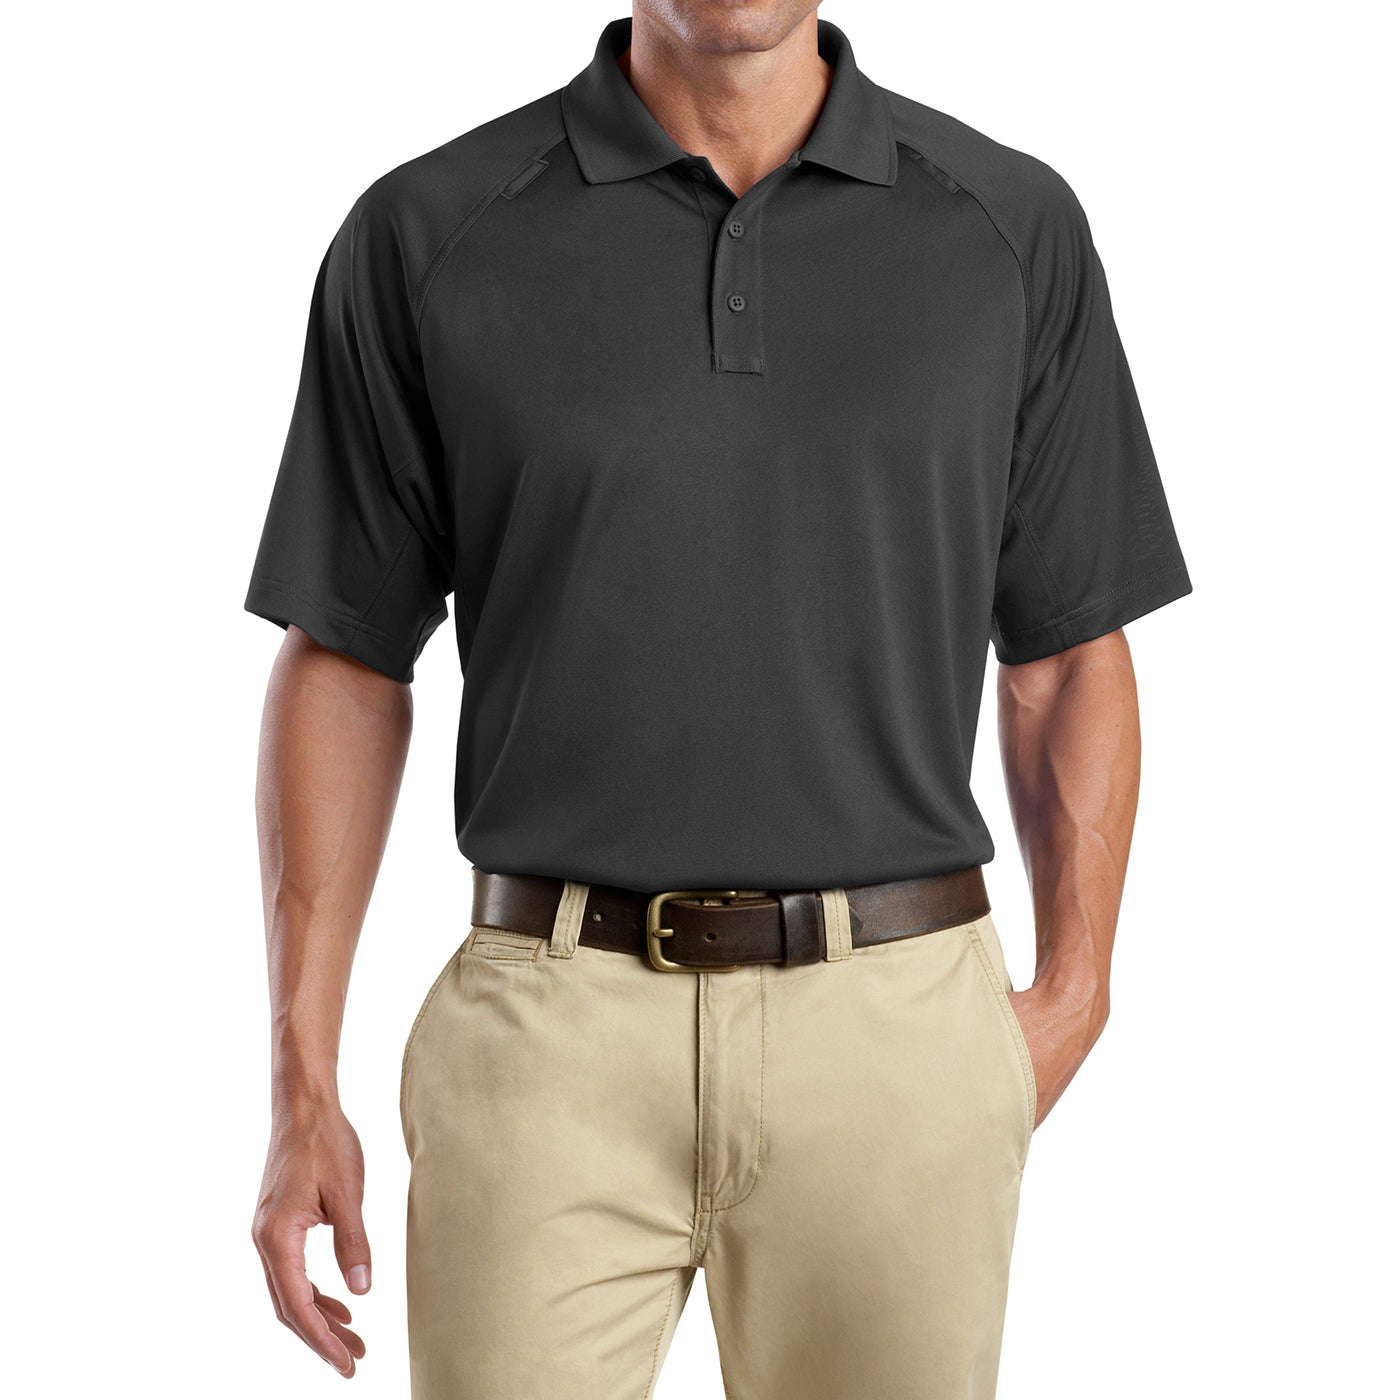 Men's Snag-Proof Tactical Polo Shirt - Charcoal - Front